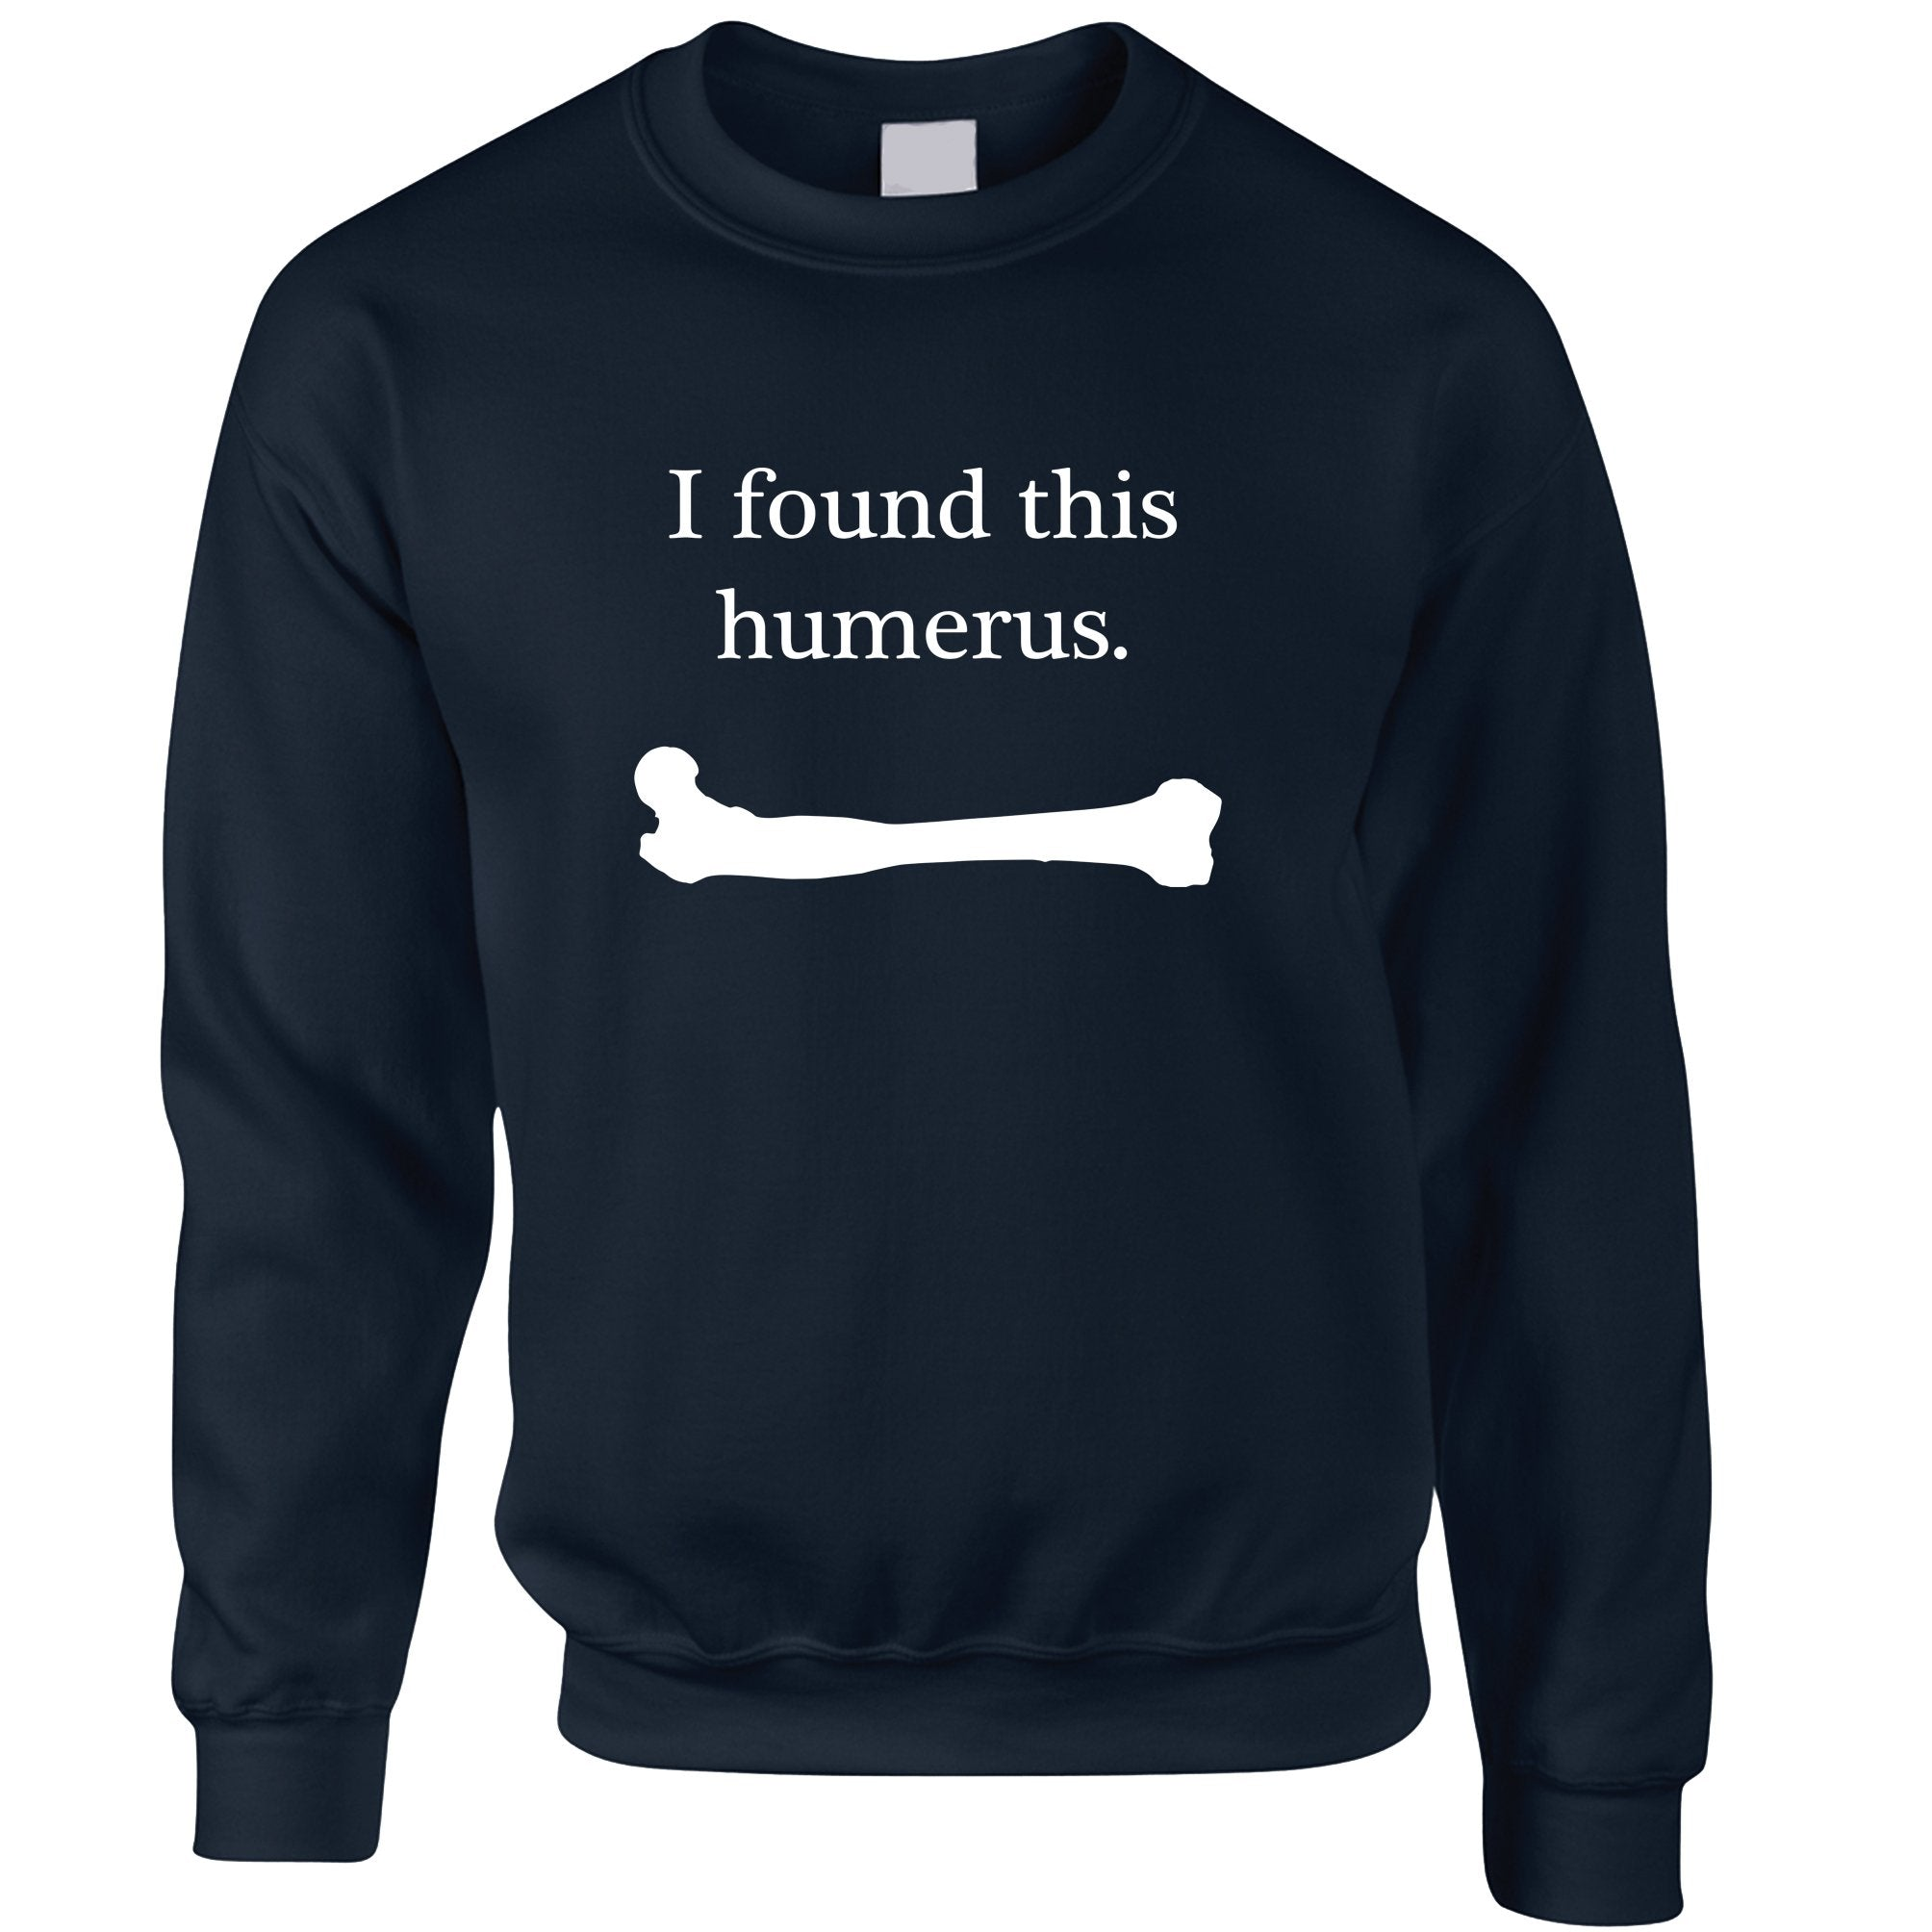 Novelty Jumper I Found This Humerus Humourous Pun Sweatshirt Sweater